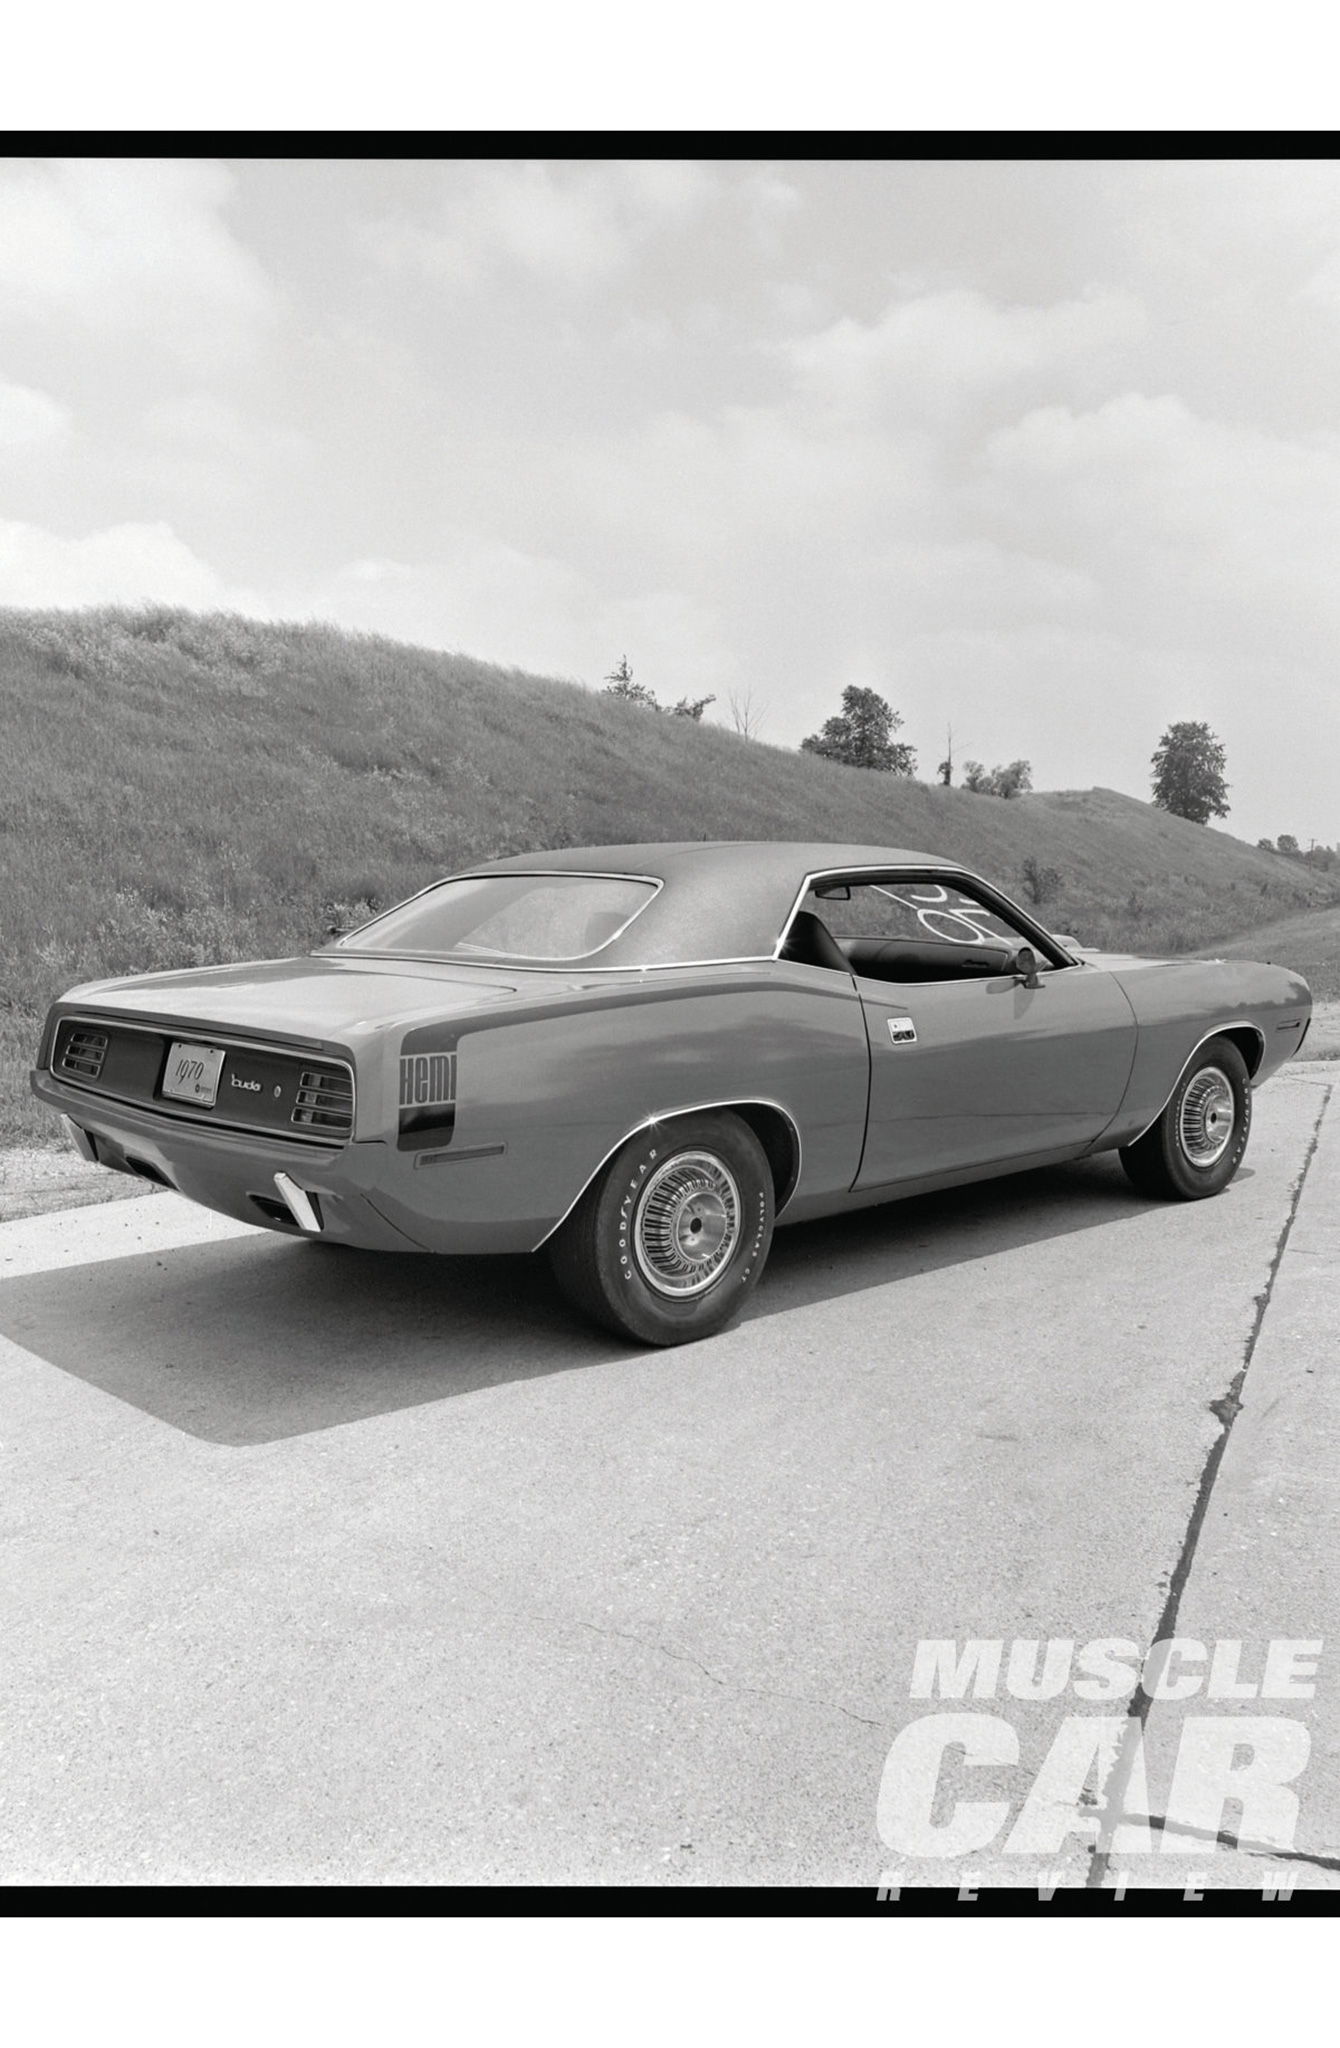 The new elastomeric bumper treatment on the 'Cuda could be ordered for the front and rear or just the front, putting it a step ahead of the GTO, according to the editors. (Note: Though the quotes in this story come from Motor Trend, the 'Cuda photos we used were shot in June 1969 by Car Craft Publisher John Raffa, who attended the same press event.)